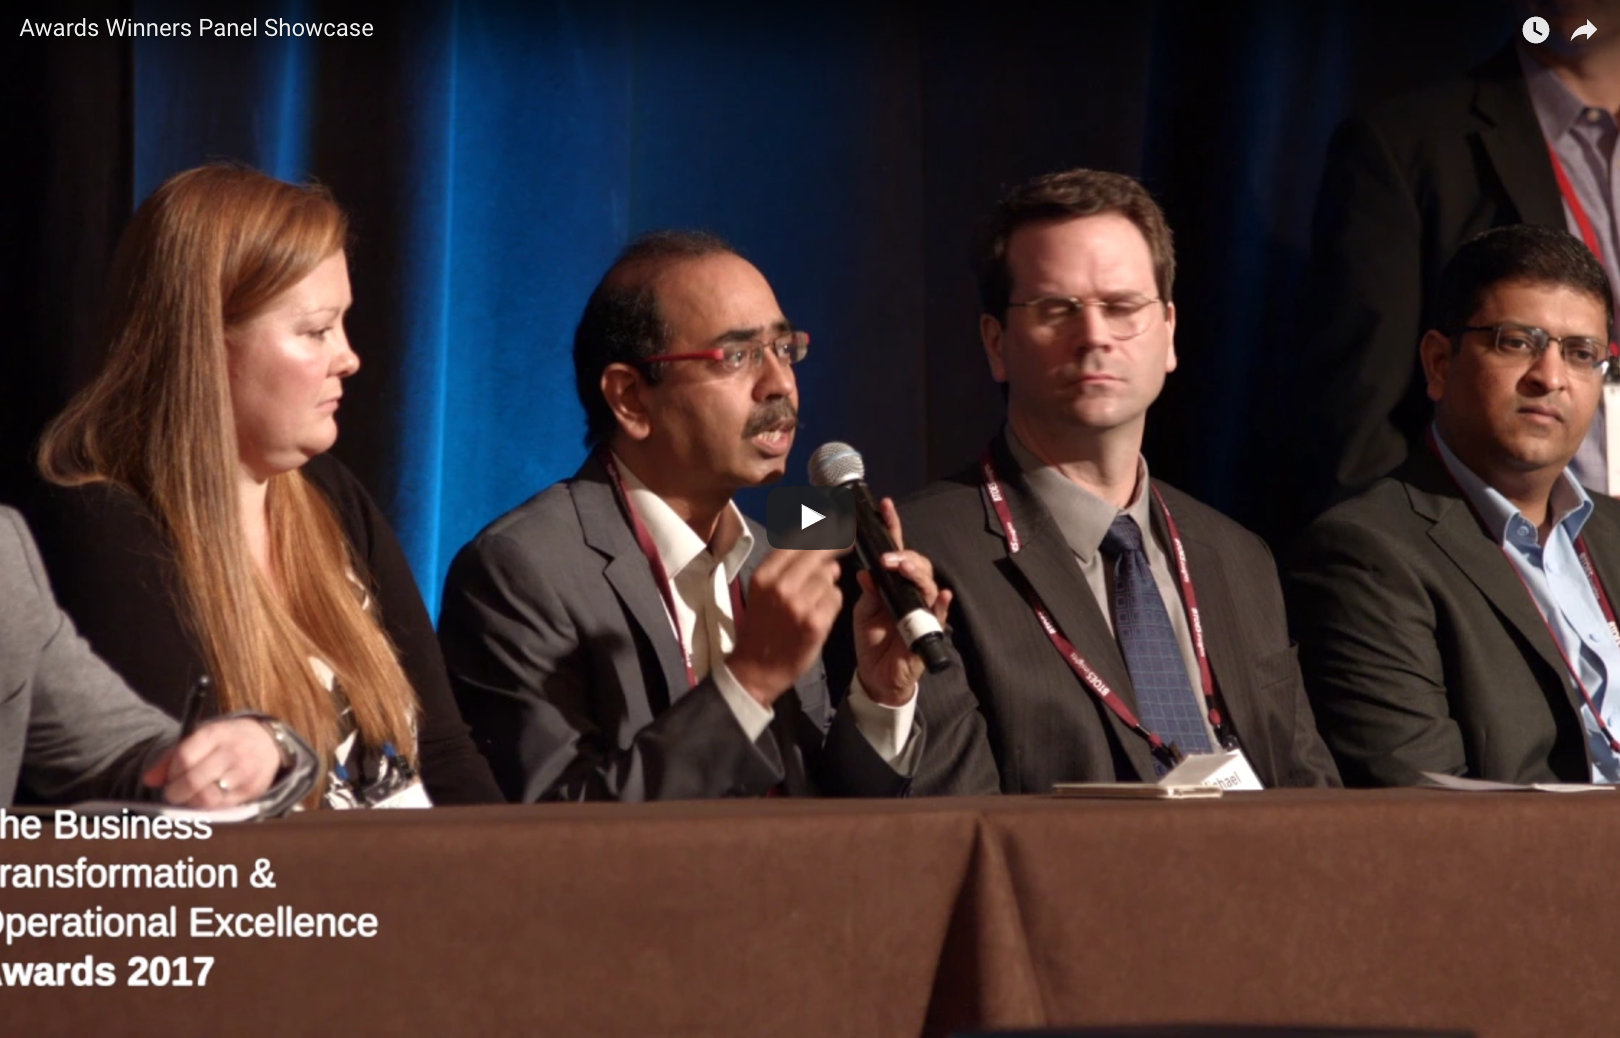 Discussion from the Business Transformation & Operational Excellence Awards Winners Panel, including IBM, Sanofi, Philips, Wipro, and many more.